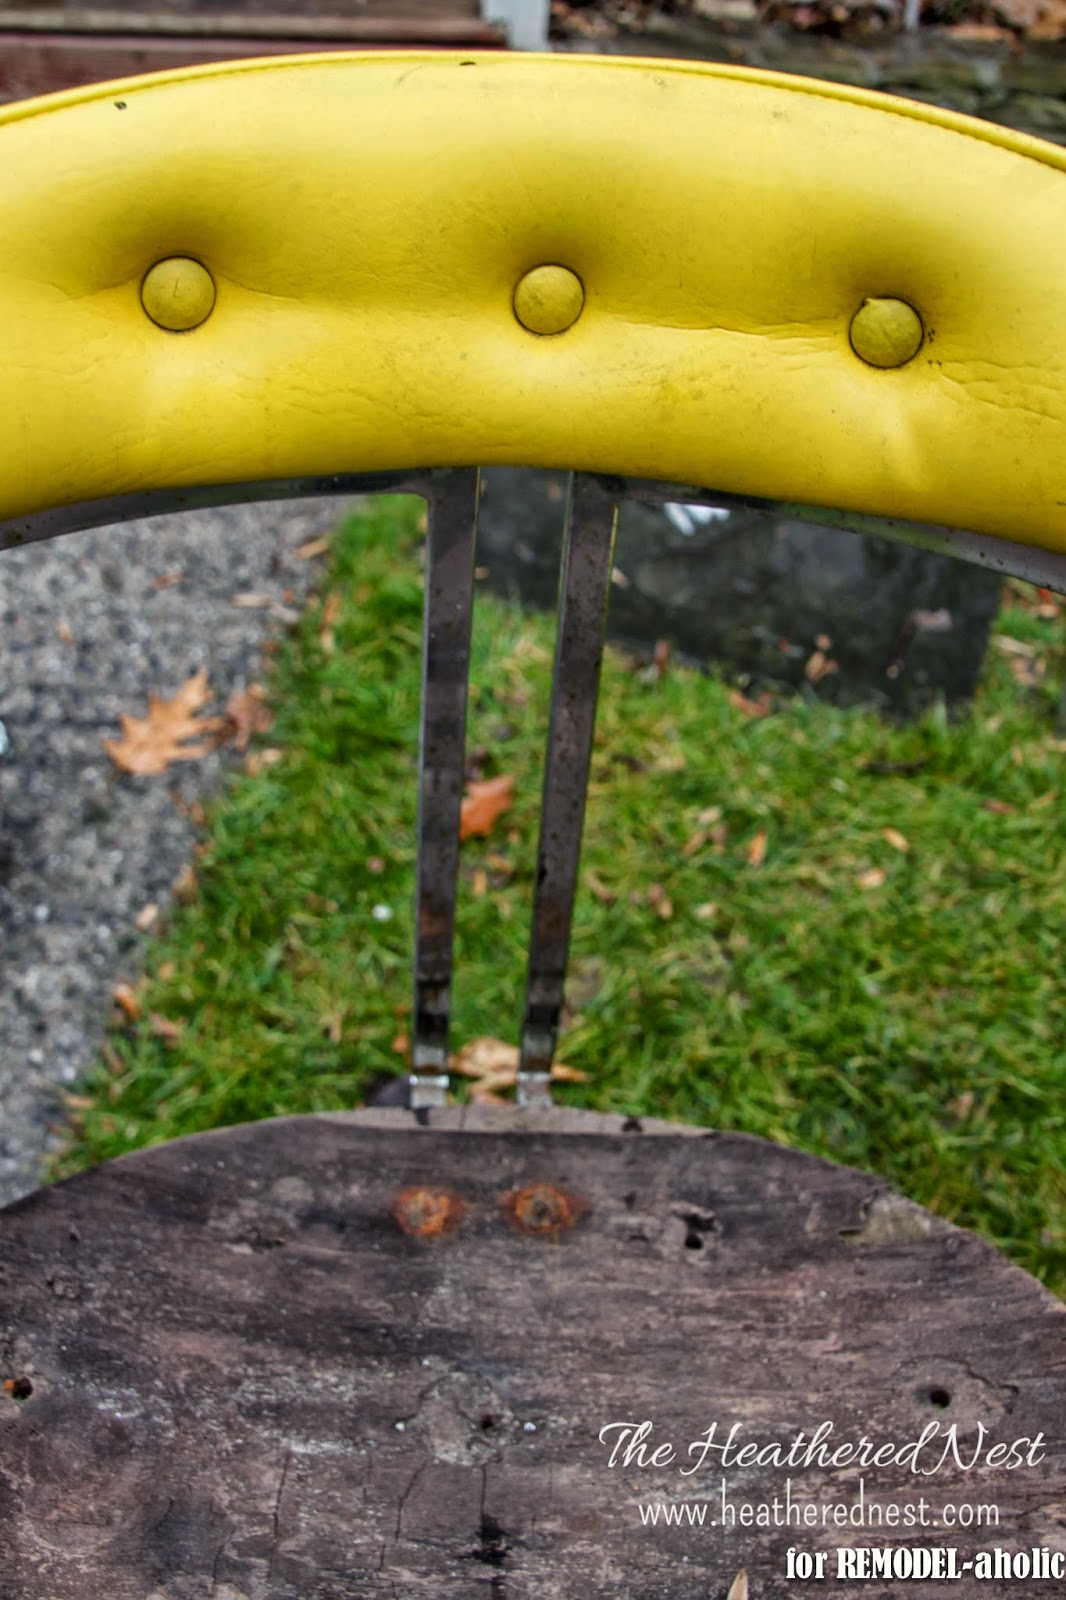 Remodelaholic how to restore rusty chrome repair and refinish a rusty chrome chair by the heathered nest featured on remodelaholic watchthetrailerfo